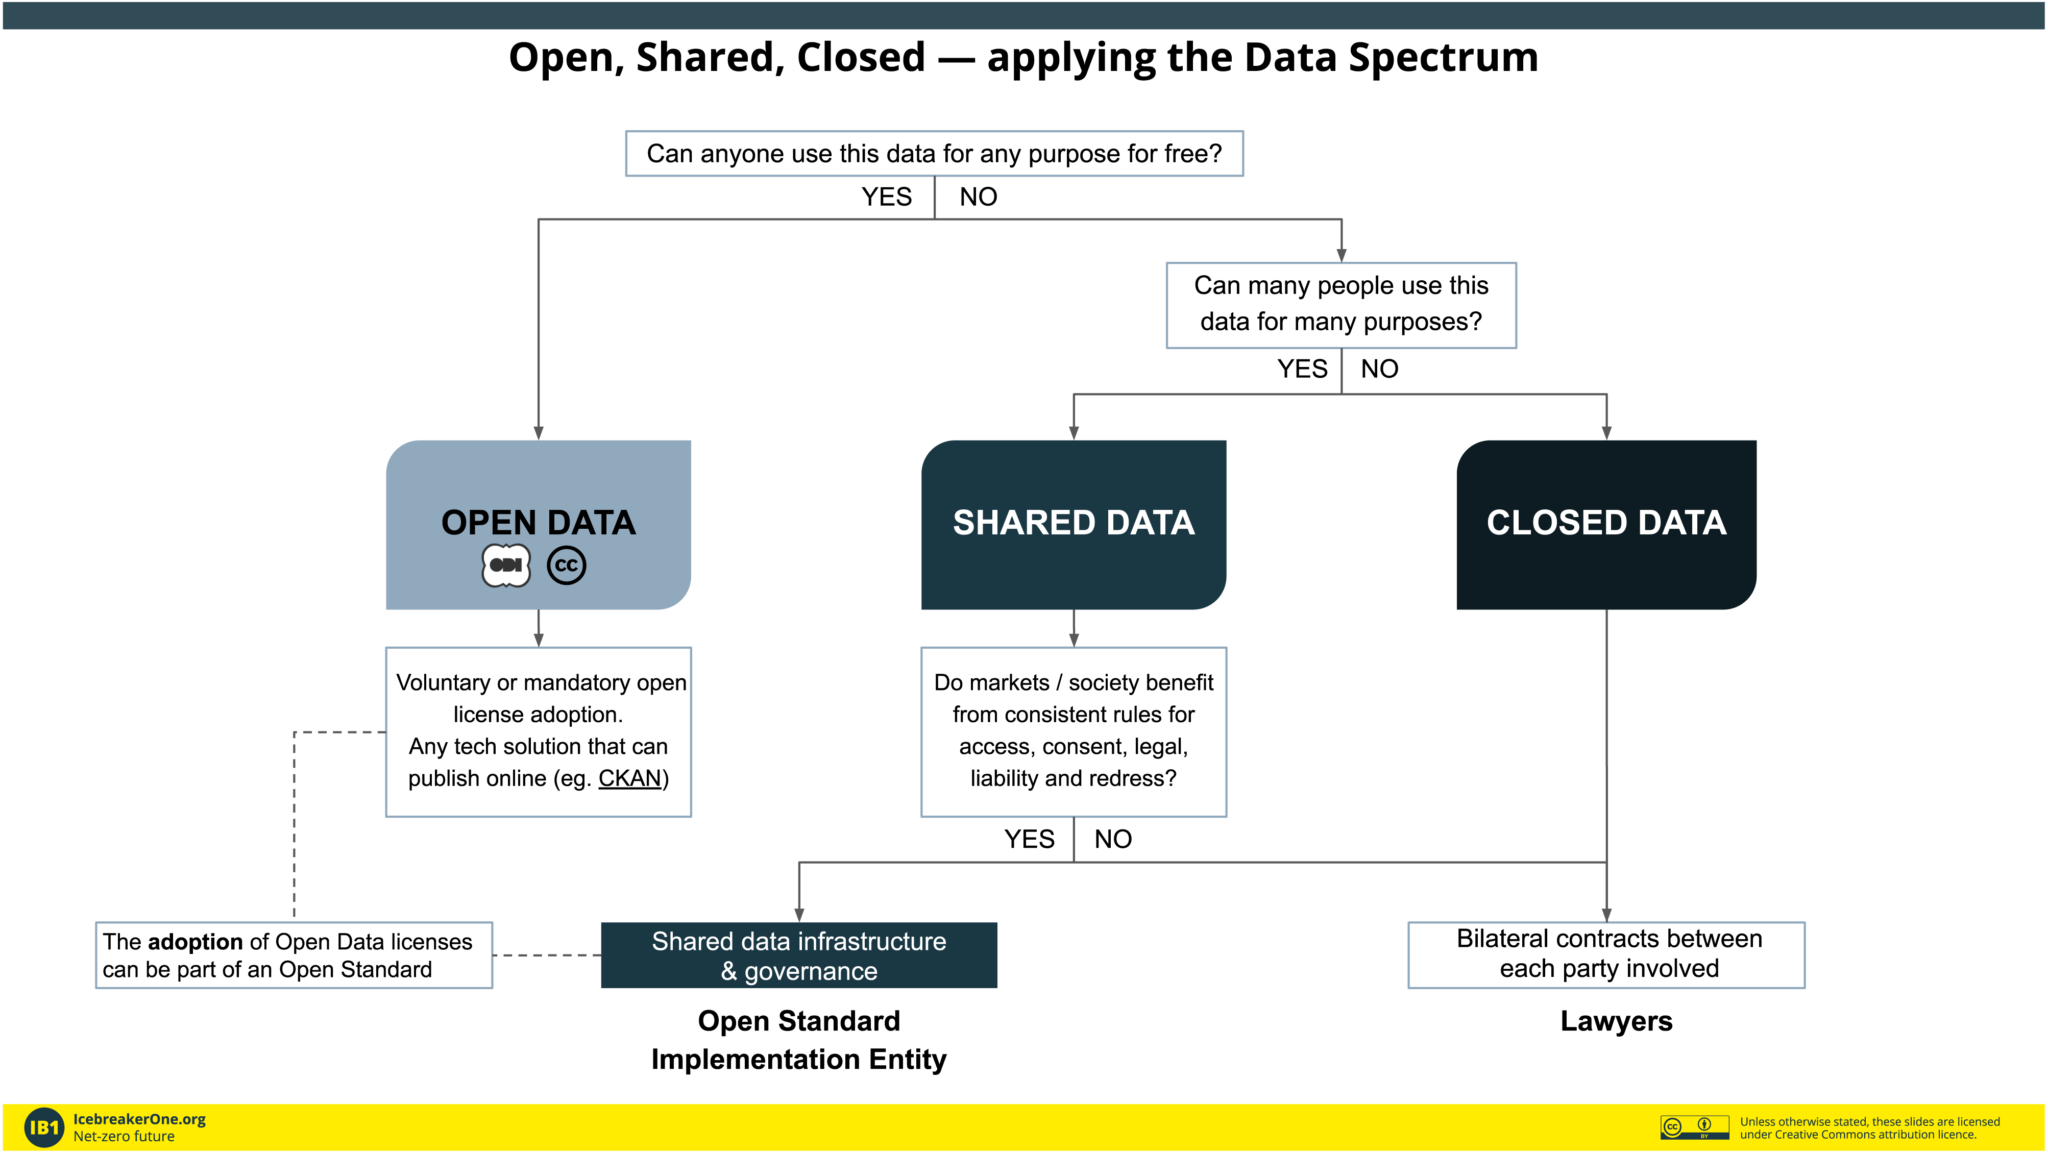 Open, Shared, Closed — applying the Data Spectrum